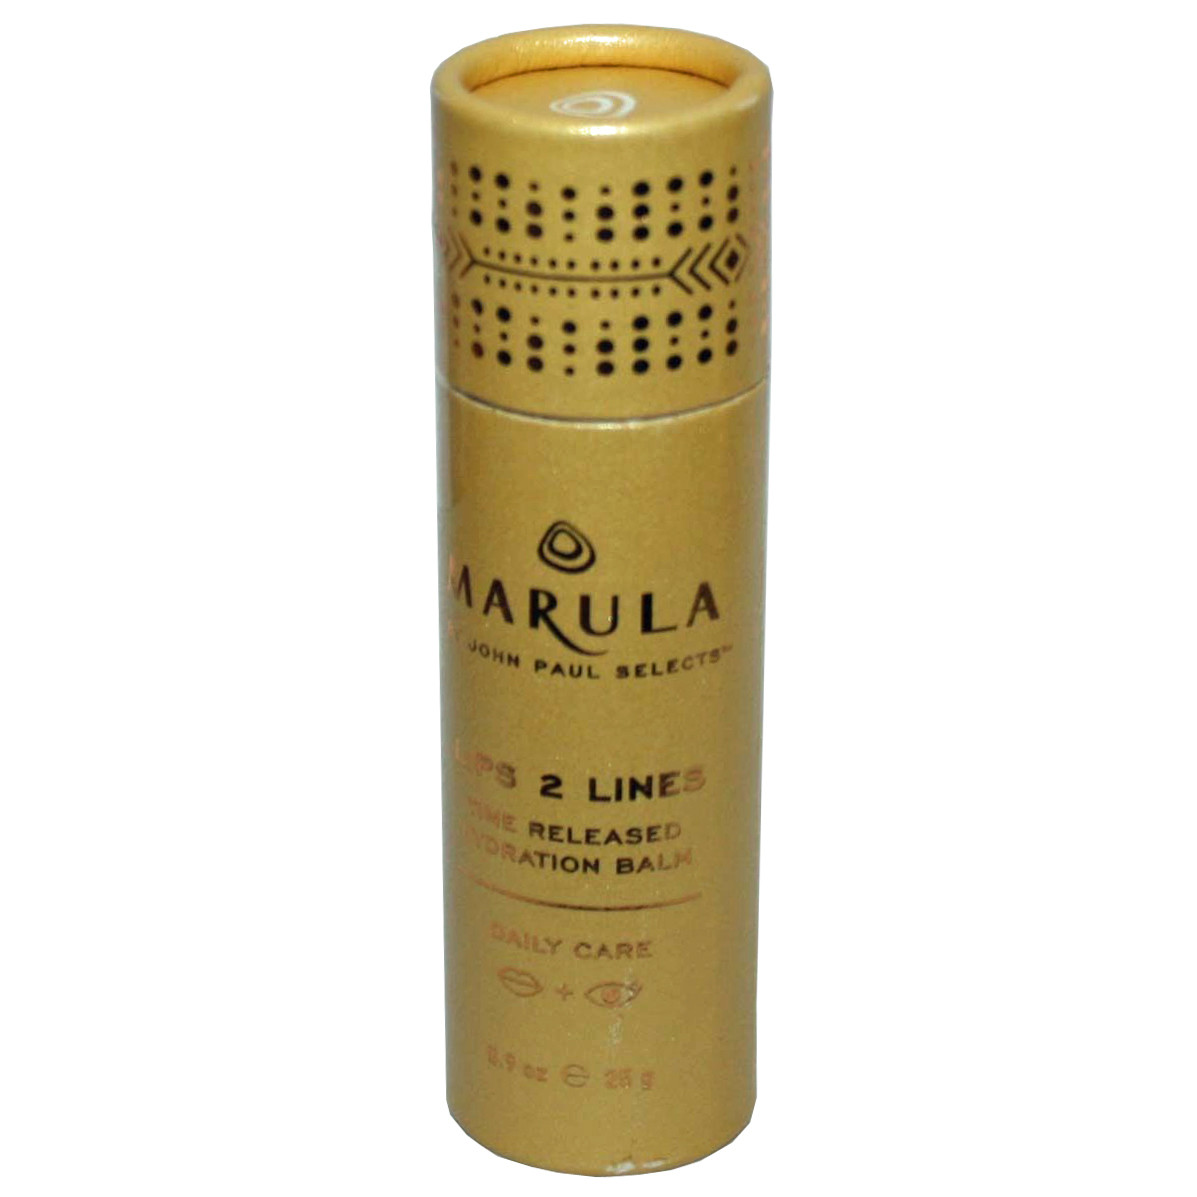 Marula By John Paul Selects Lips & Lines Time Released Hydration Balm 0.9 oz